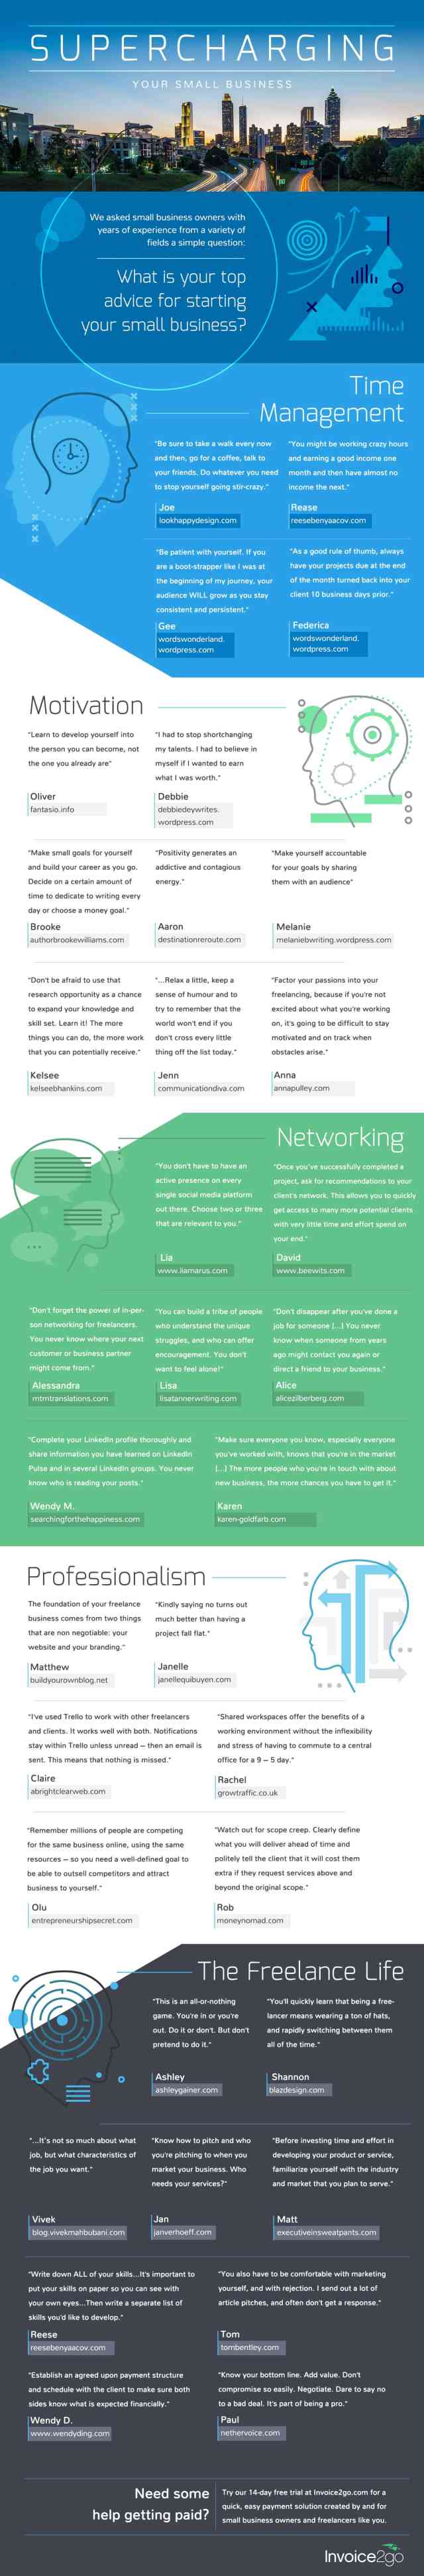 Small business advice infographic